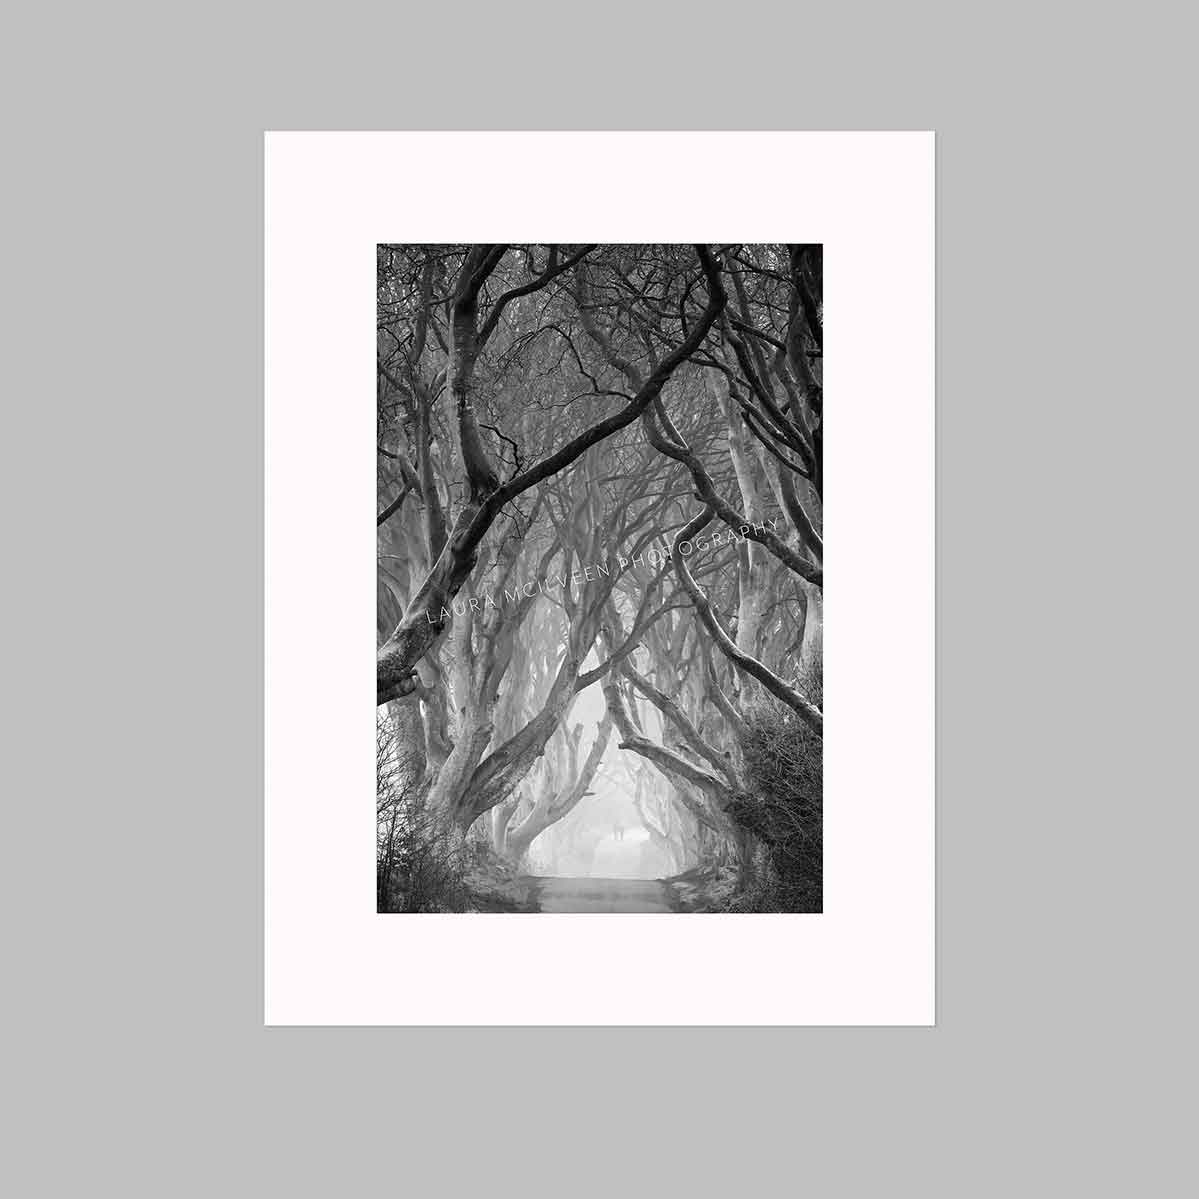 'Walking' - The Dark Hedges